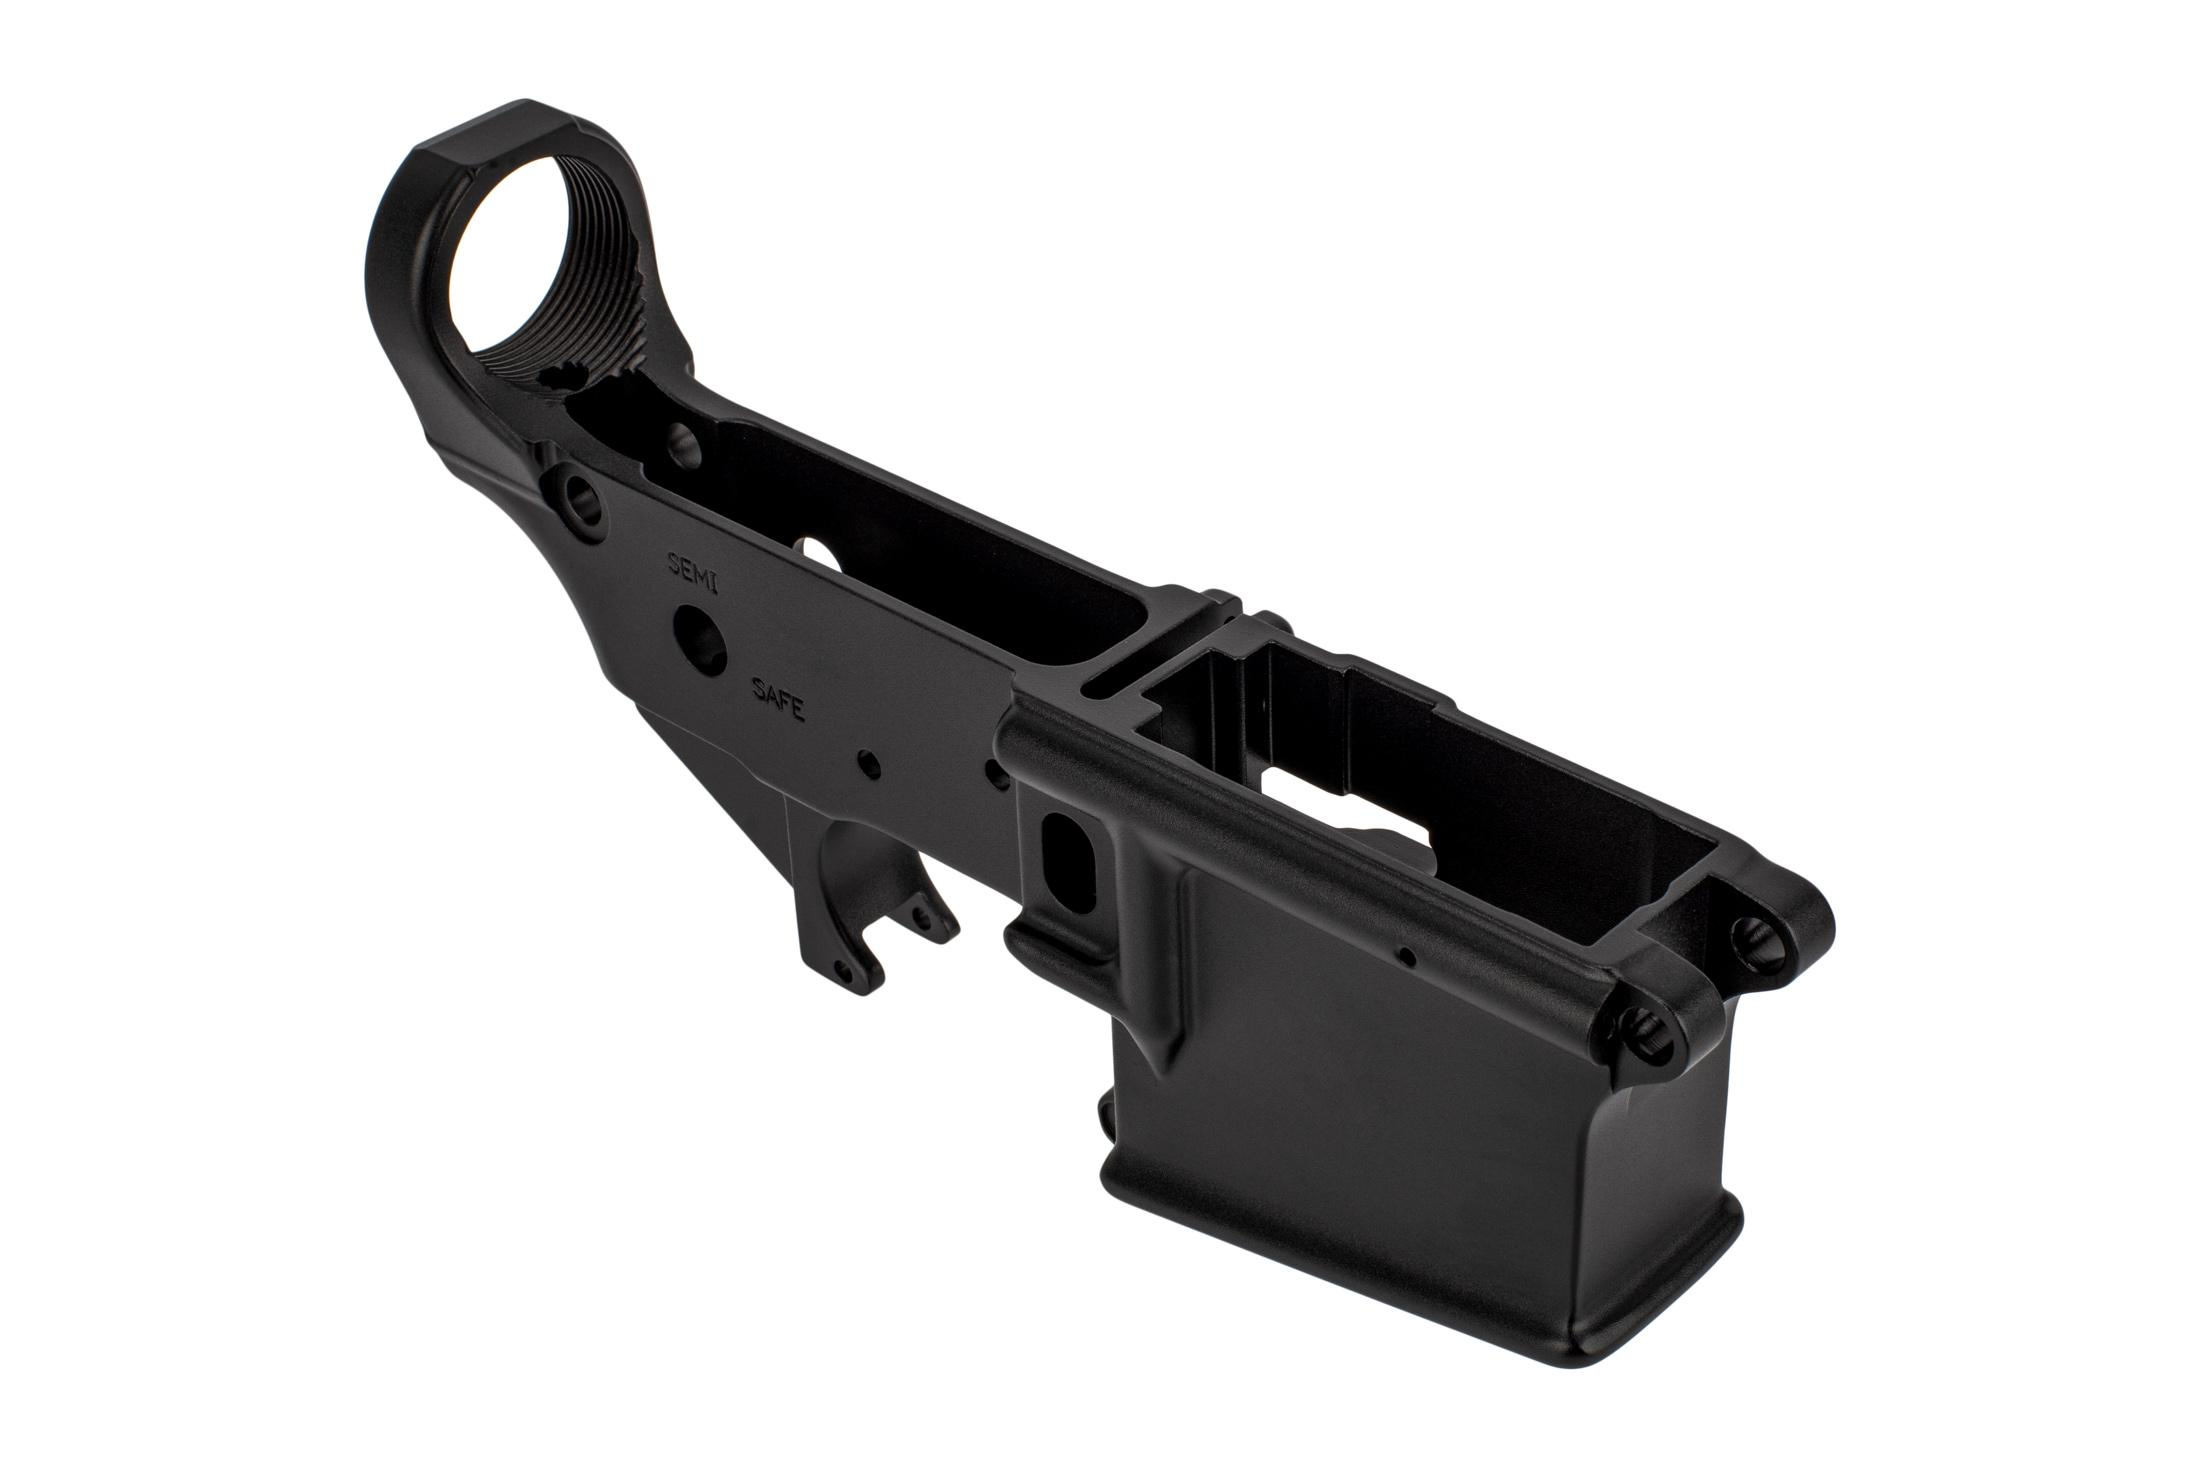 Expo Arms AR15 lower receiver is manufactured by Mega Arms